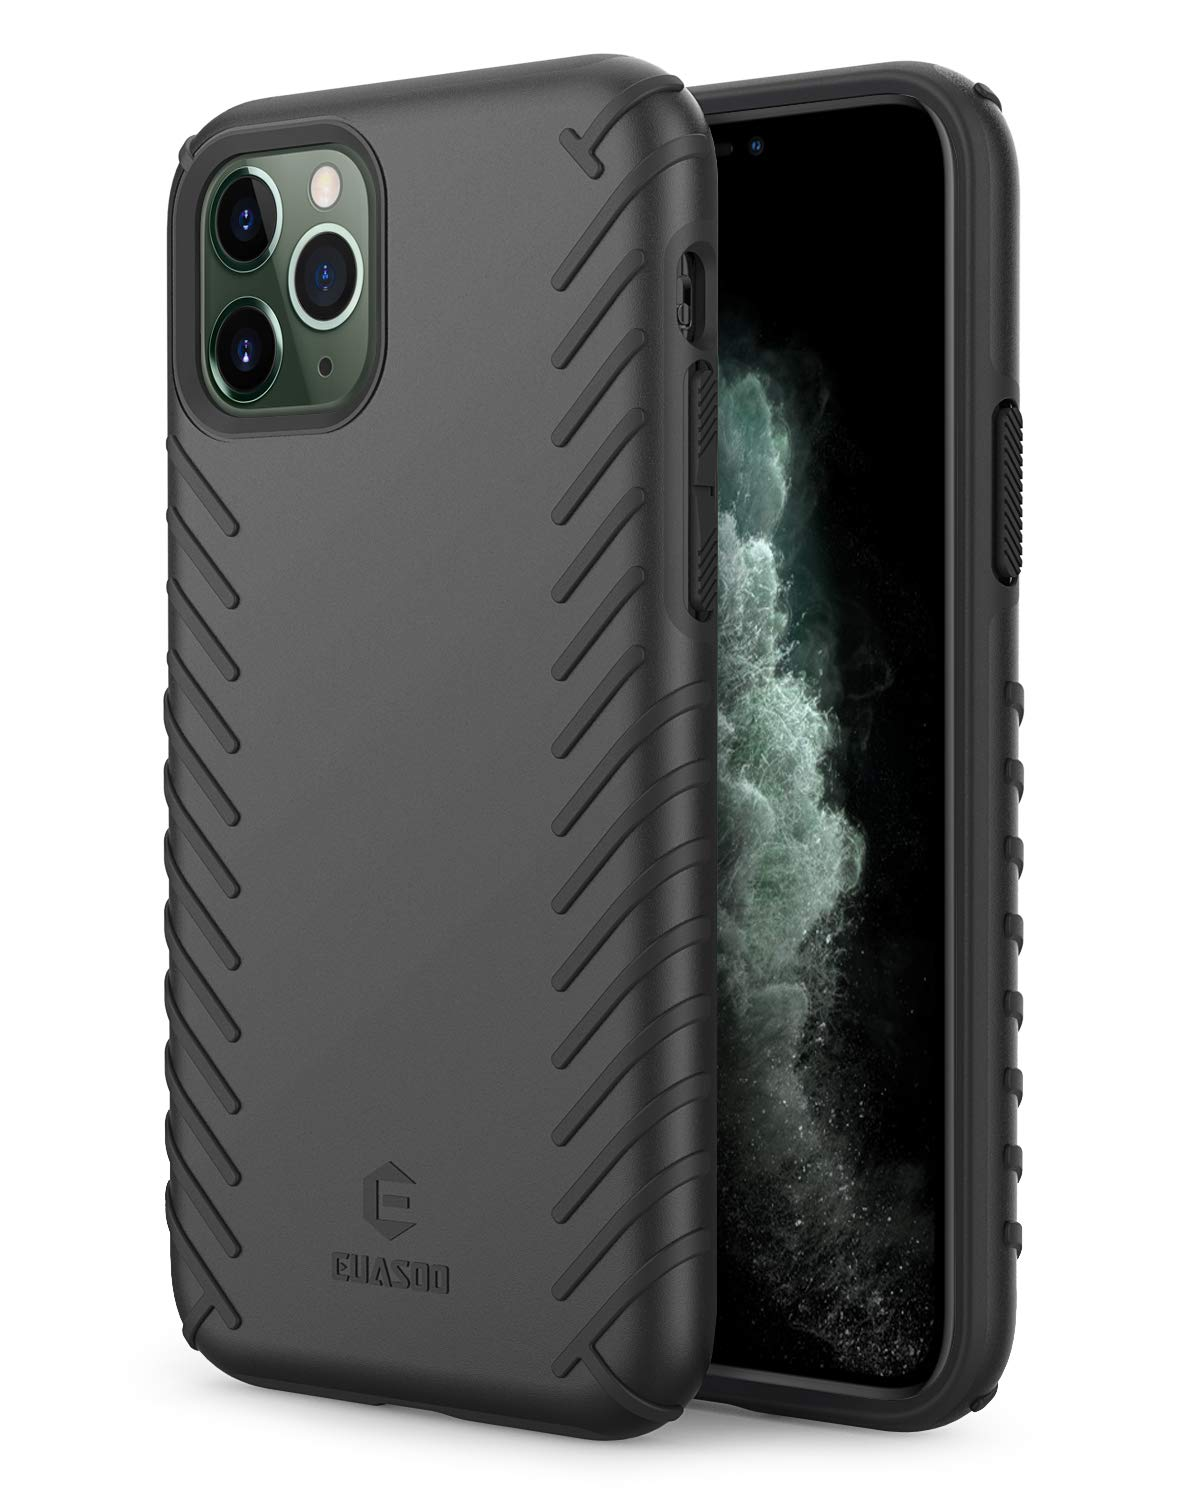 EUASOO iPhone 11 Pro Case, PC + Soft TPU Cover Double Protection, High Effective Heat Dissipation,Support Wireless Charging,Anti-Scratch Resistant Cover for iPhone 11 Pro,Black